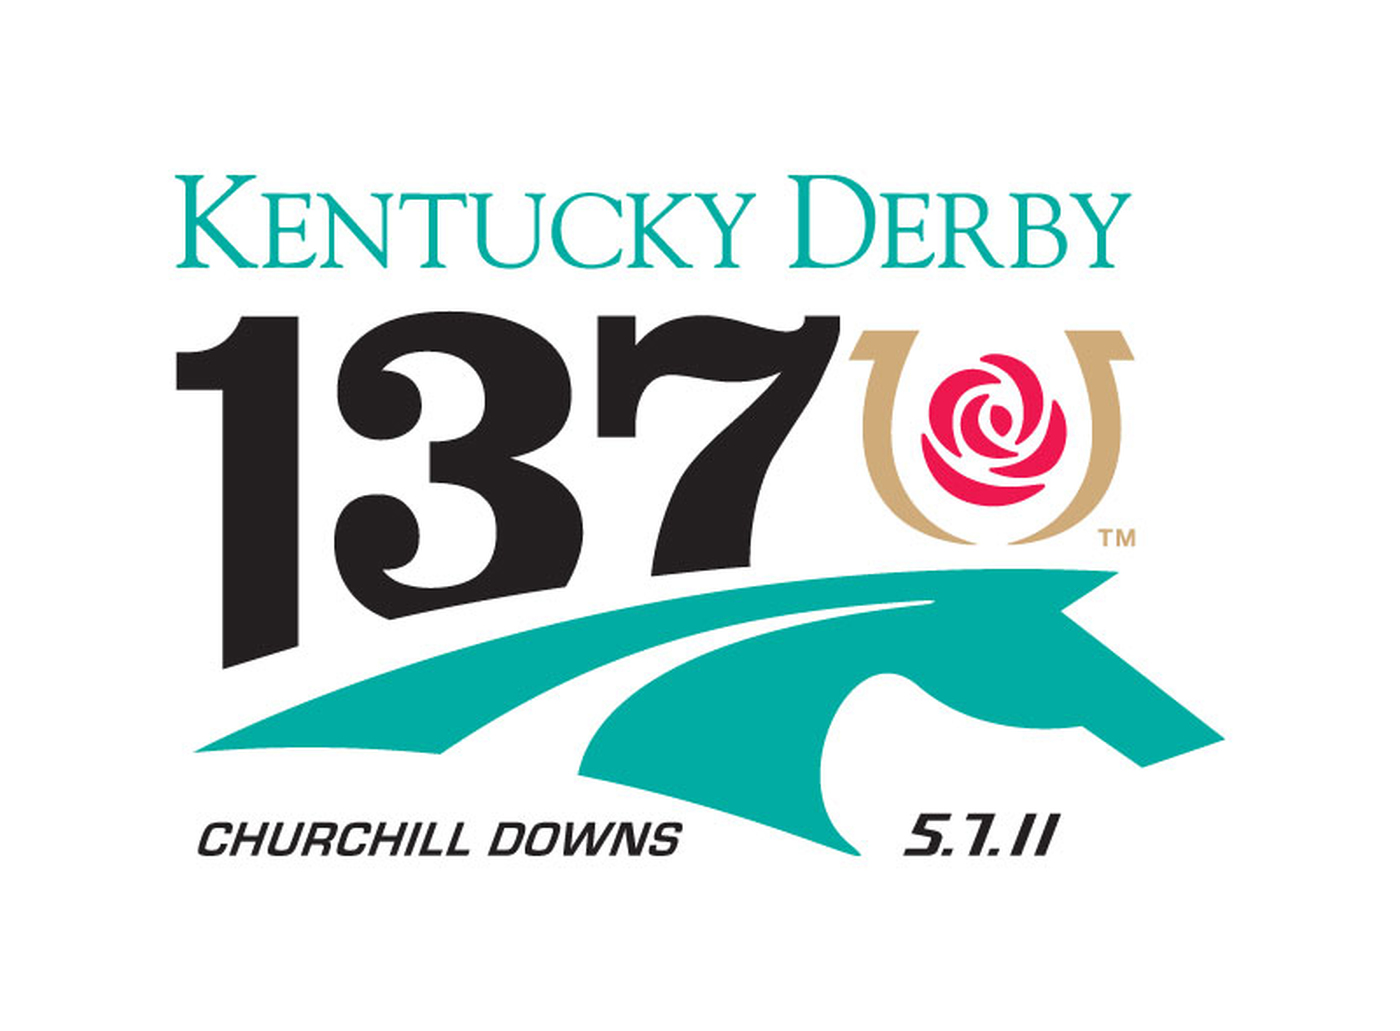 Longines Flat Racing Event: THE SWISS WATCH BRAND LONGINES PARTNERS WITH CHURCHILL DOWNS INCORPORATED AS 'OFFICIAL TIMEKEEPER' OF KENTUCKY DERBY®, HOME TRACK 1